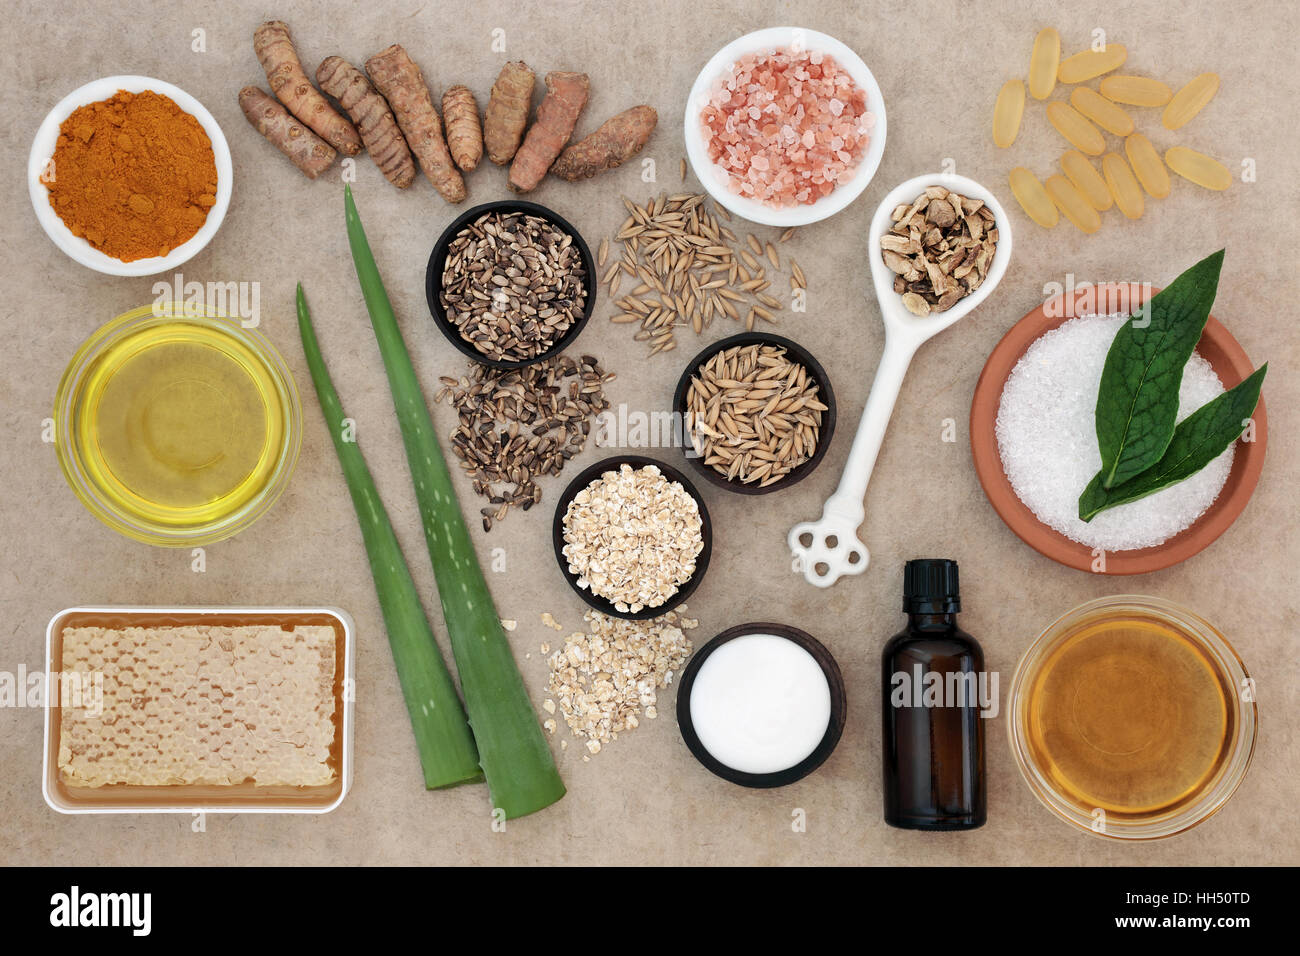 Natural ingredients for skin health care to help heal eczema and psoriasis on hemp paper background. - Stock Image